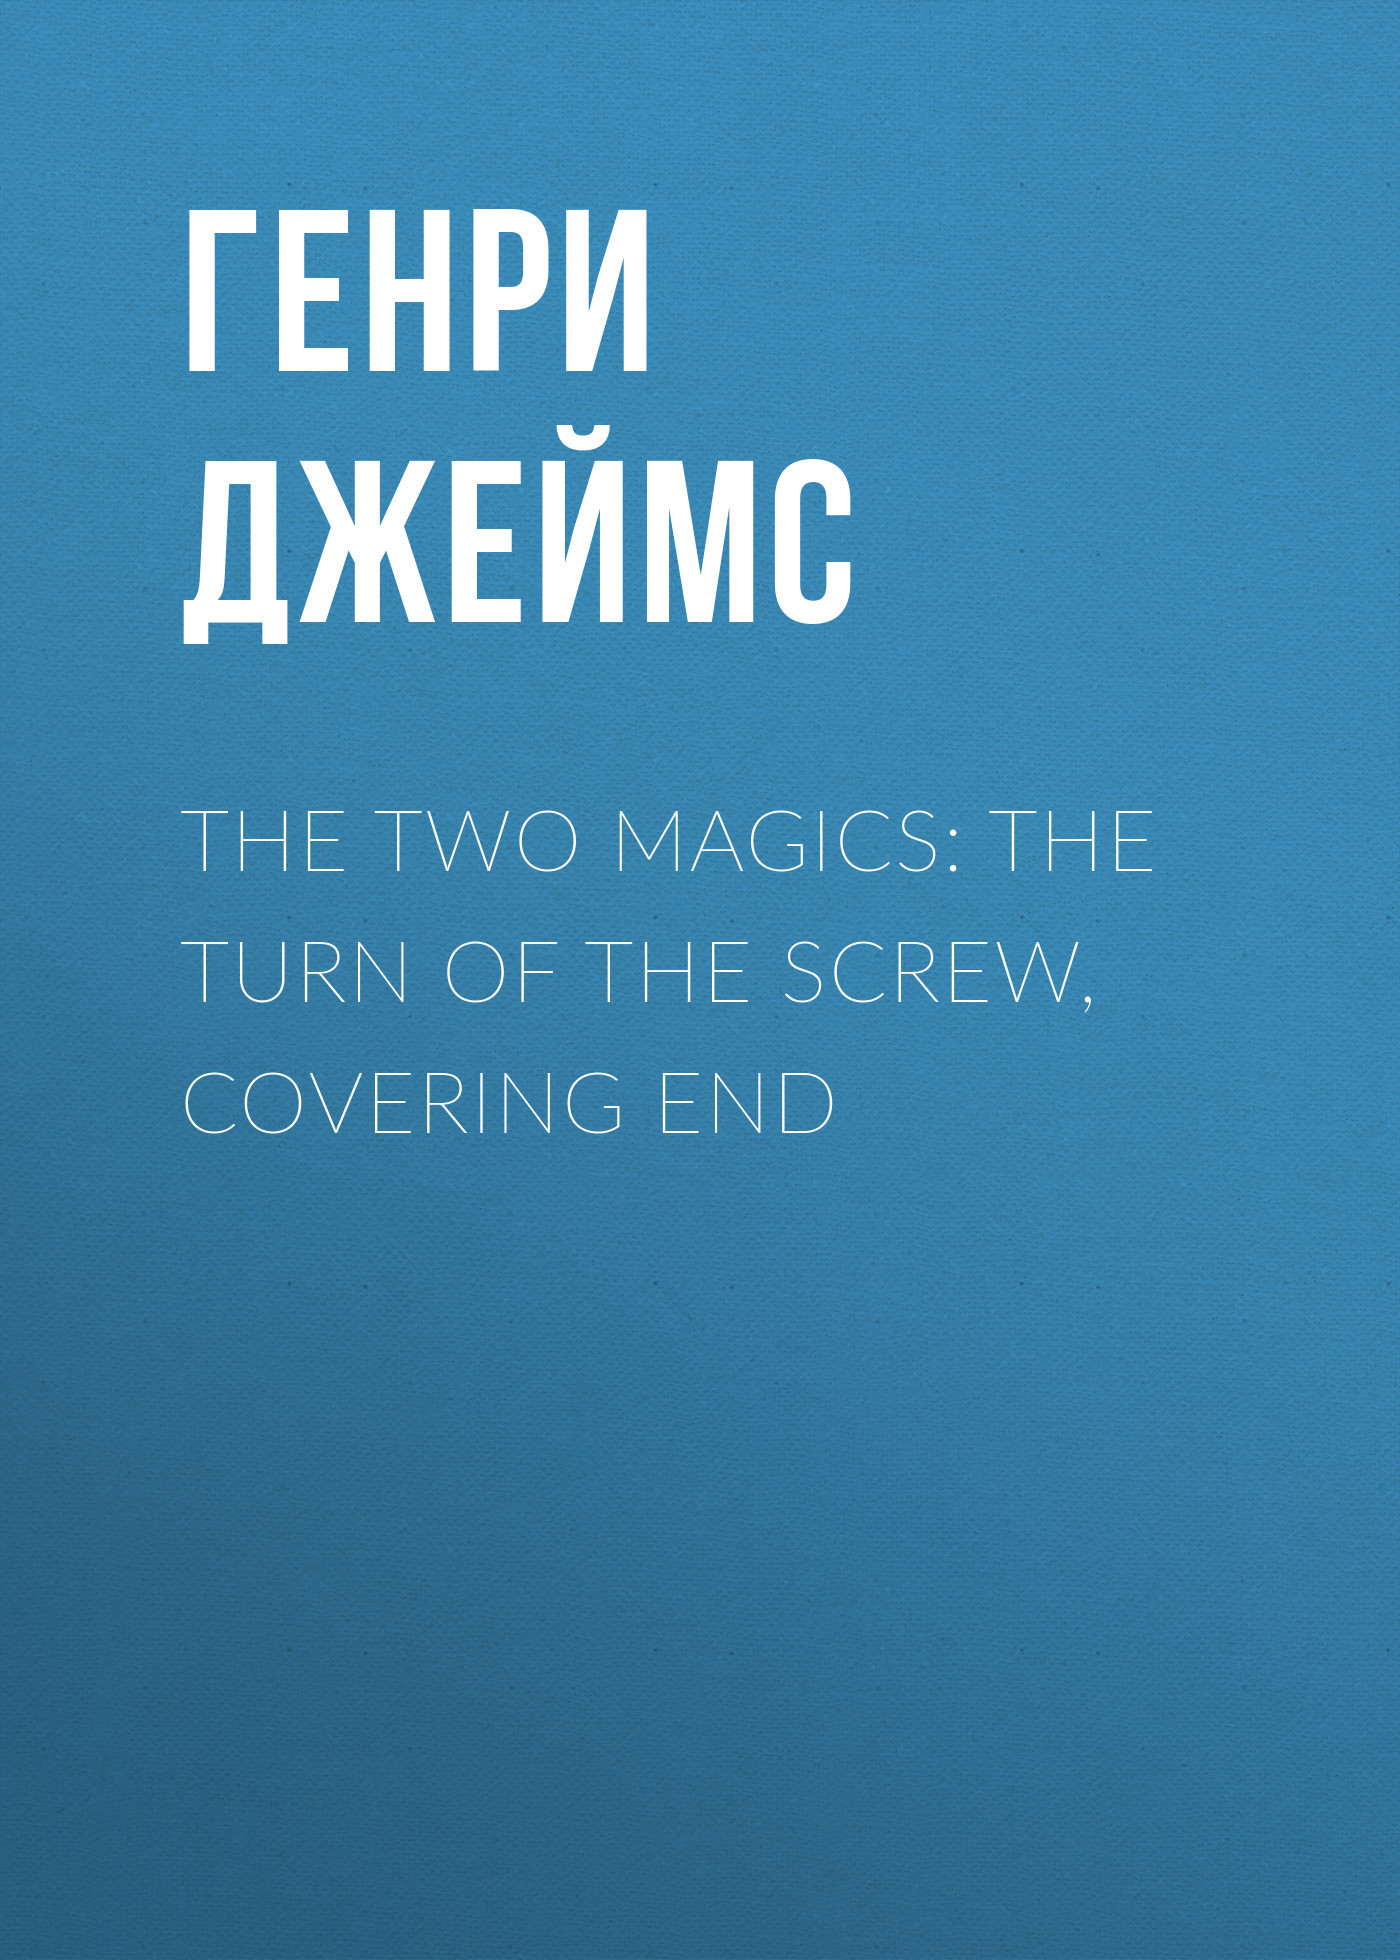 Генри Джеймс The Two Magics: The Turn of the Screw, Covering End router bit 8 8 35 100 of 3 flutes flat end mills carbide end milling tungsten knife cnc machine tools mills cutter